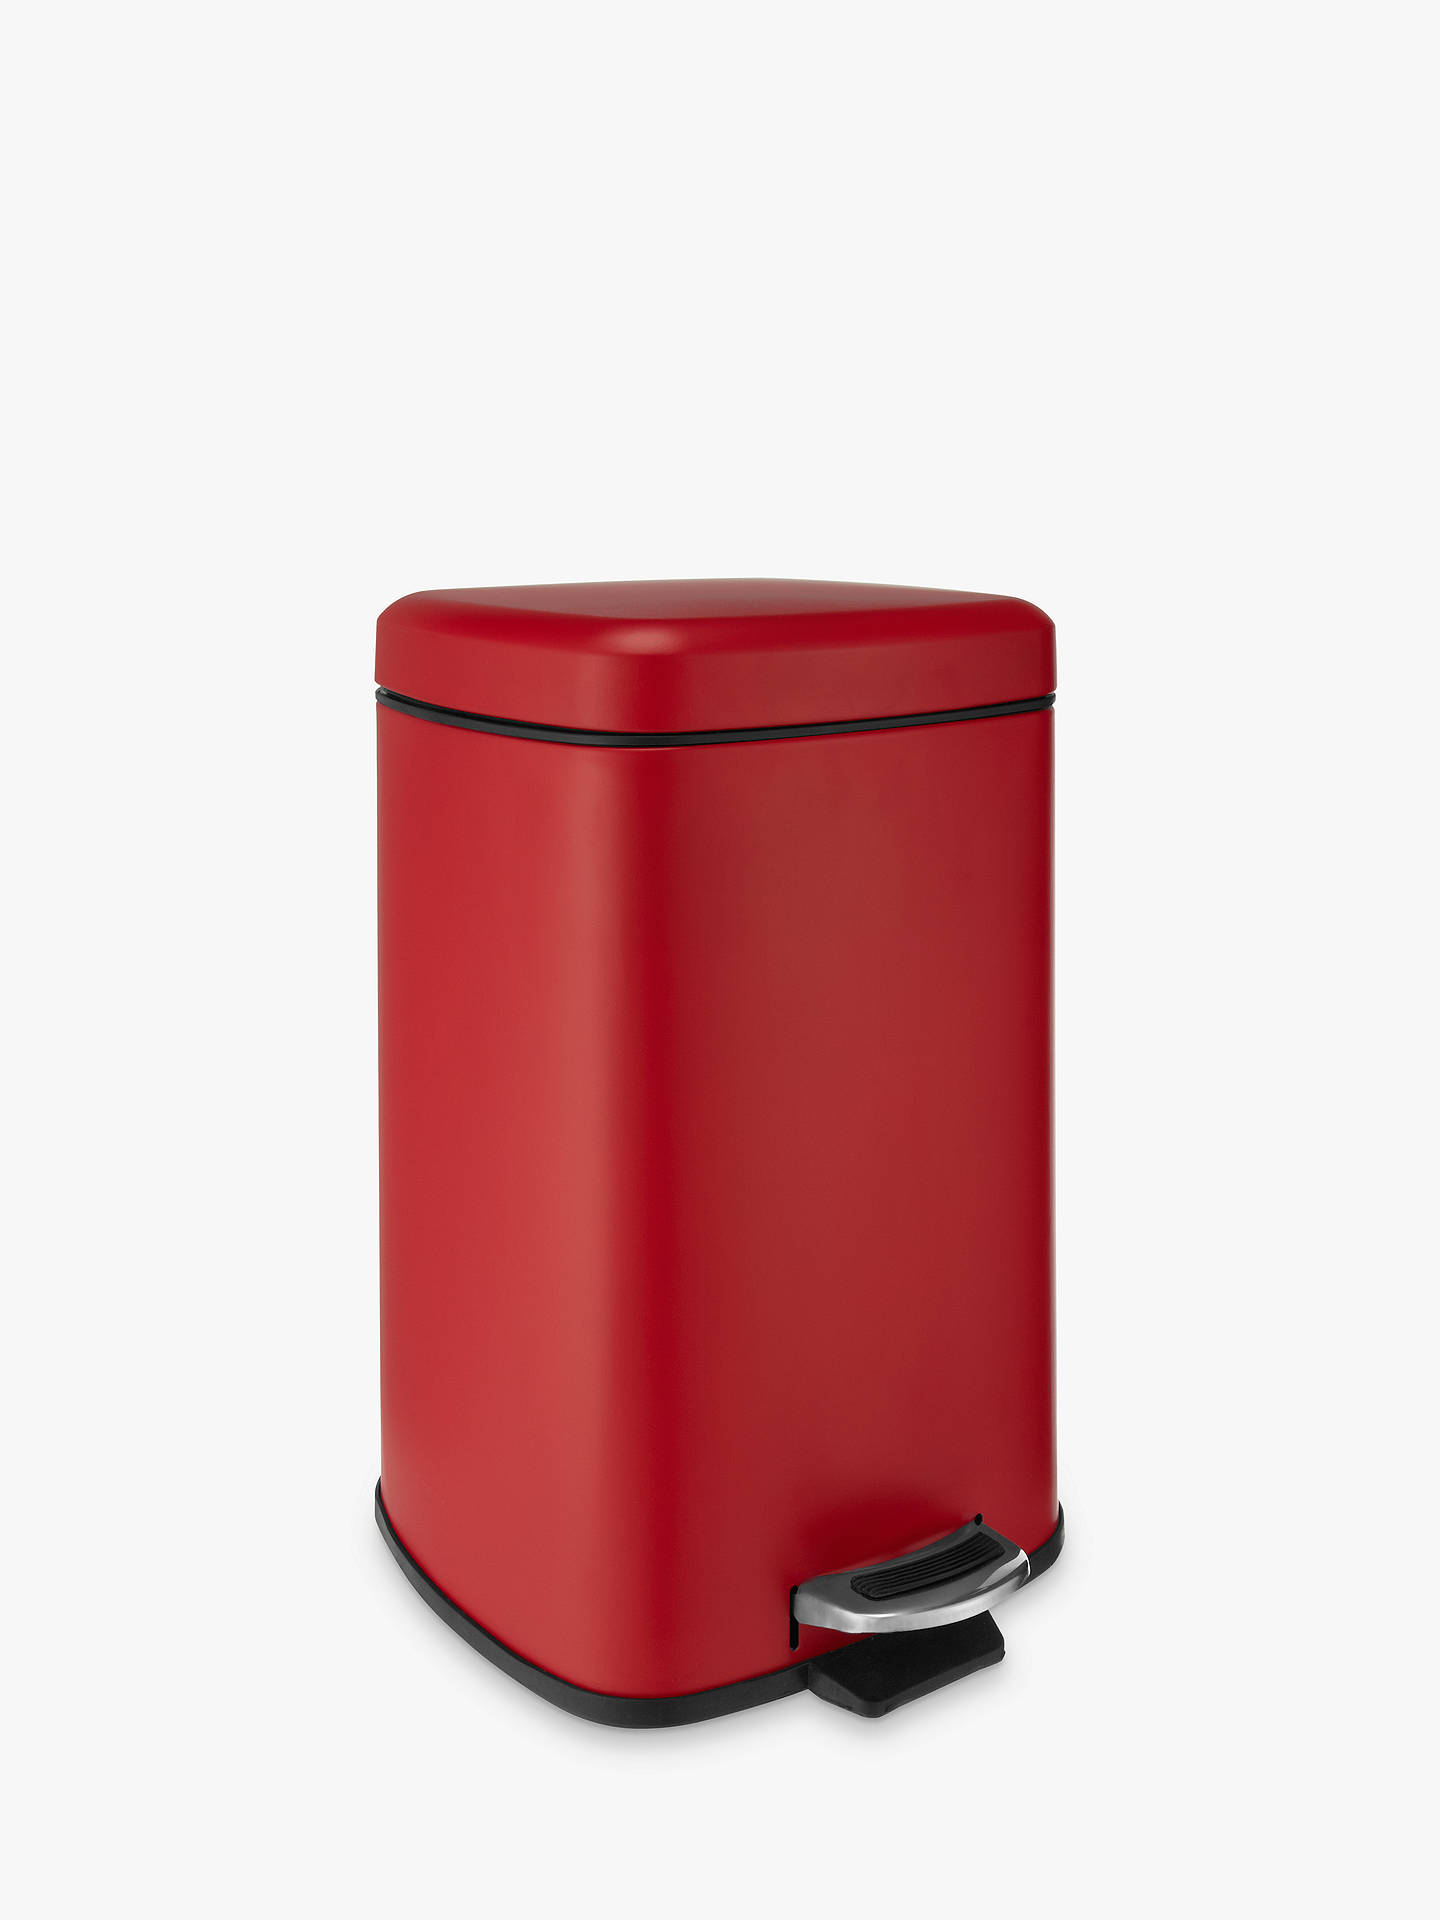 BuyHouse by John Lewis Pedal Bin, 12L, Red Online at johnlewis.com